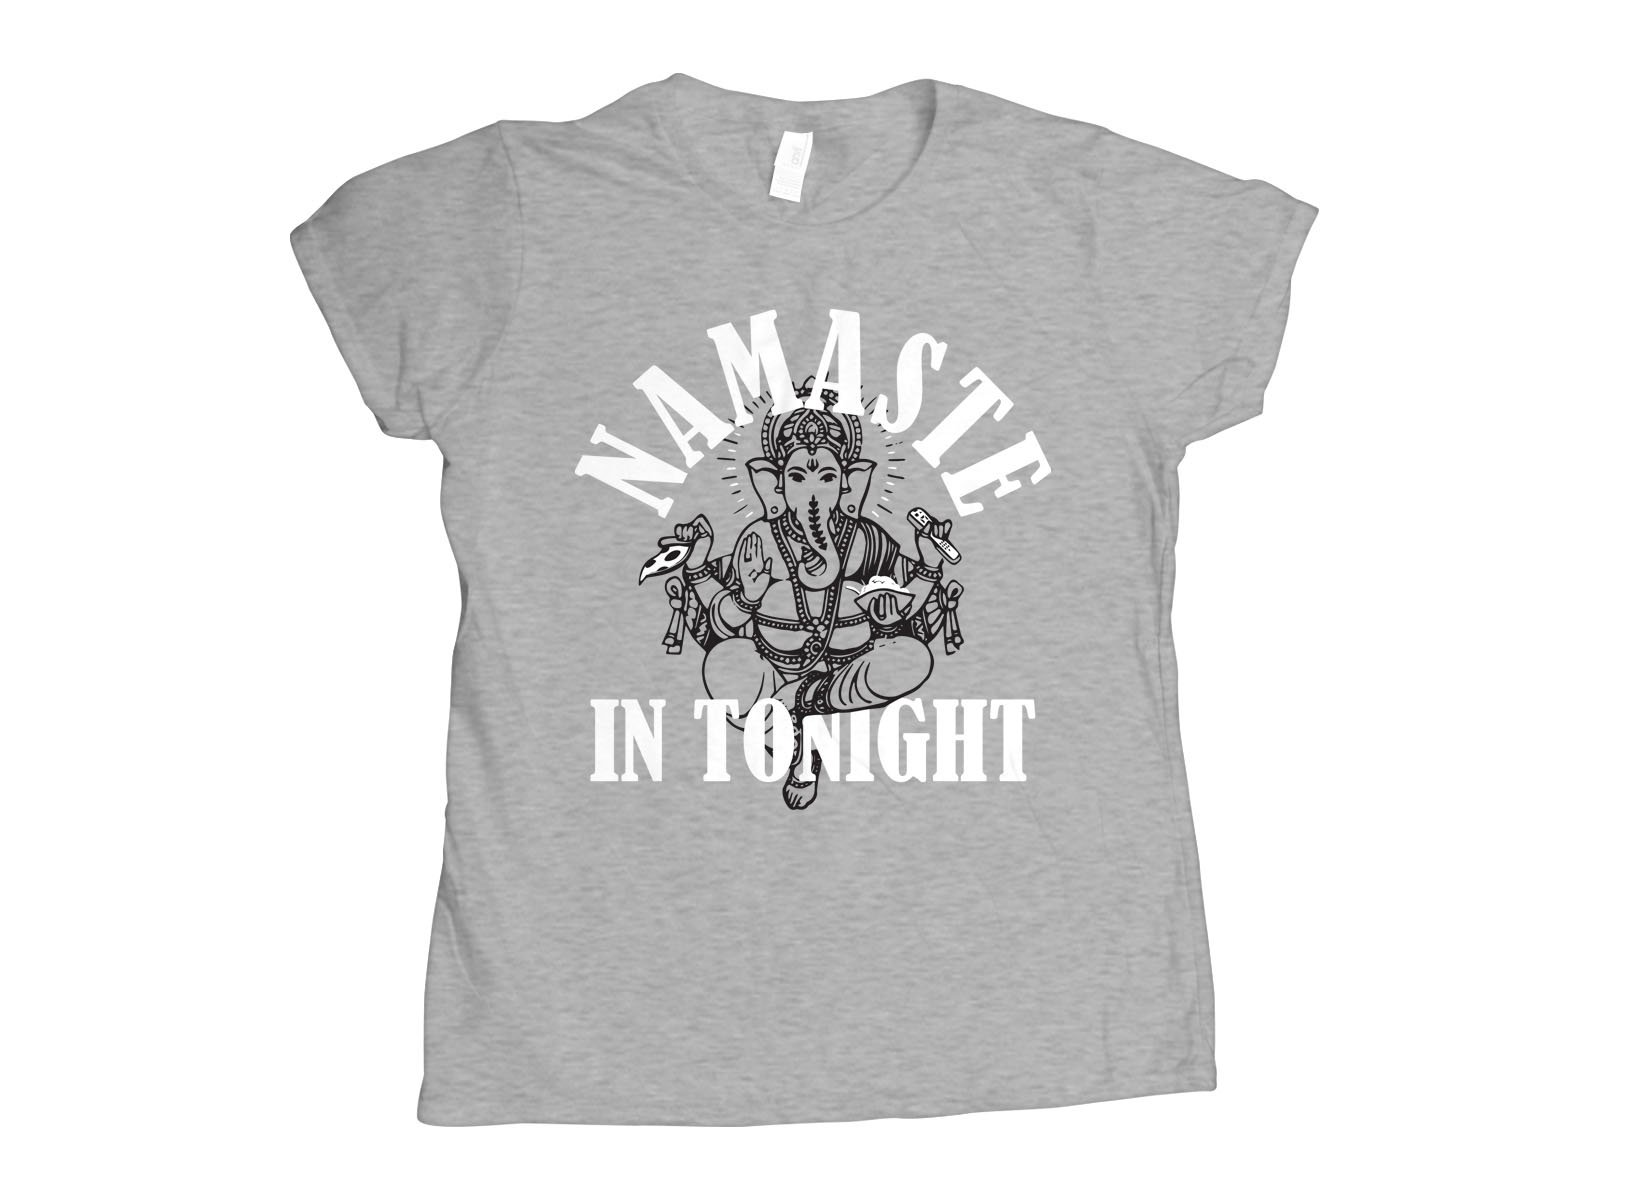 Namaste In Tonight on Womens T-Shirt